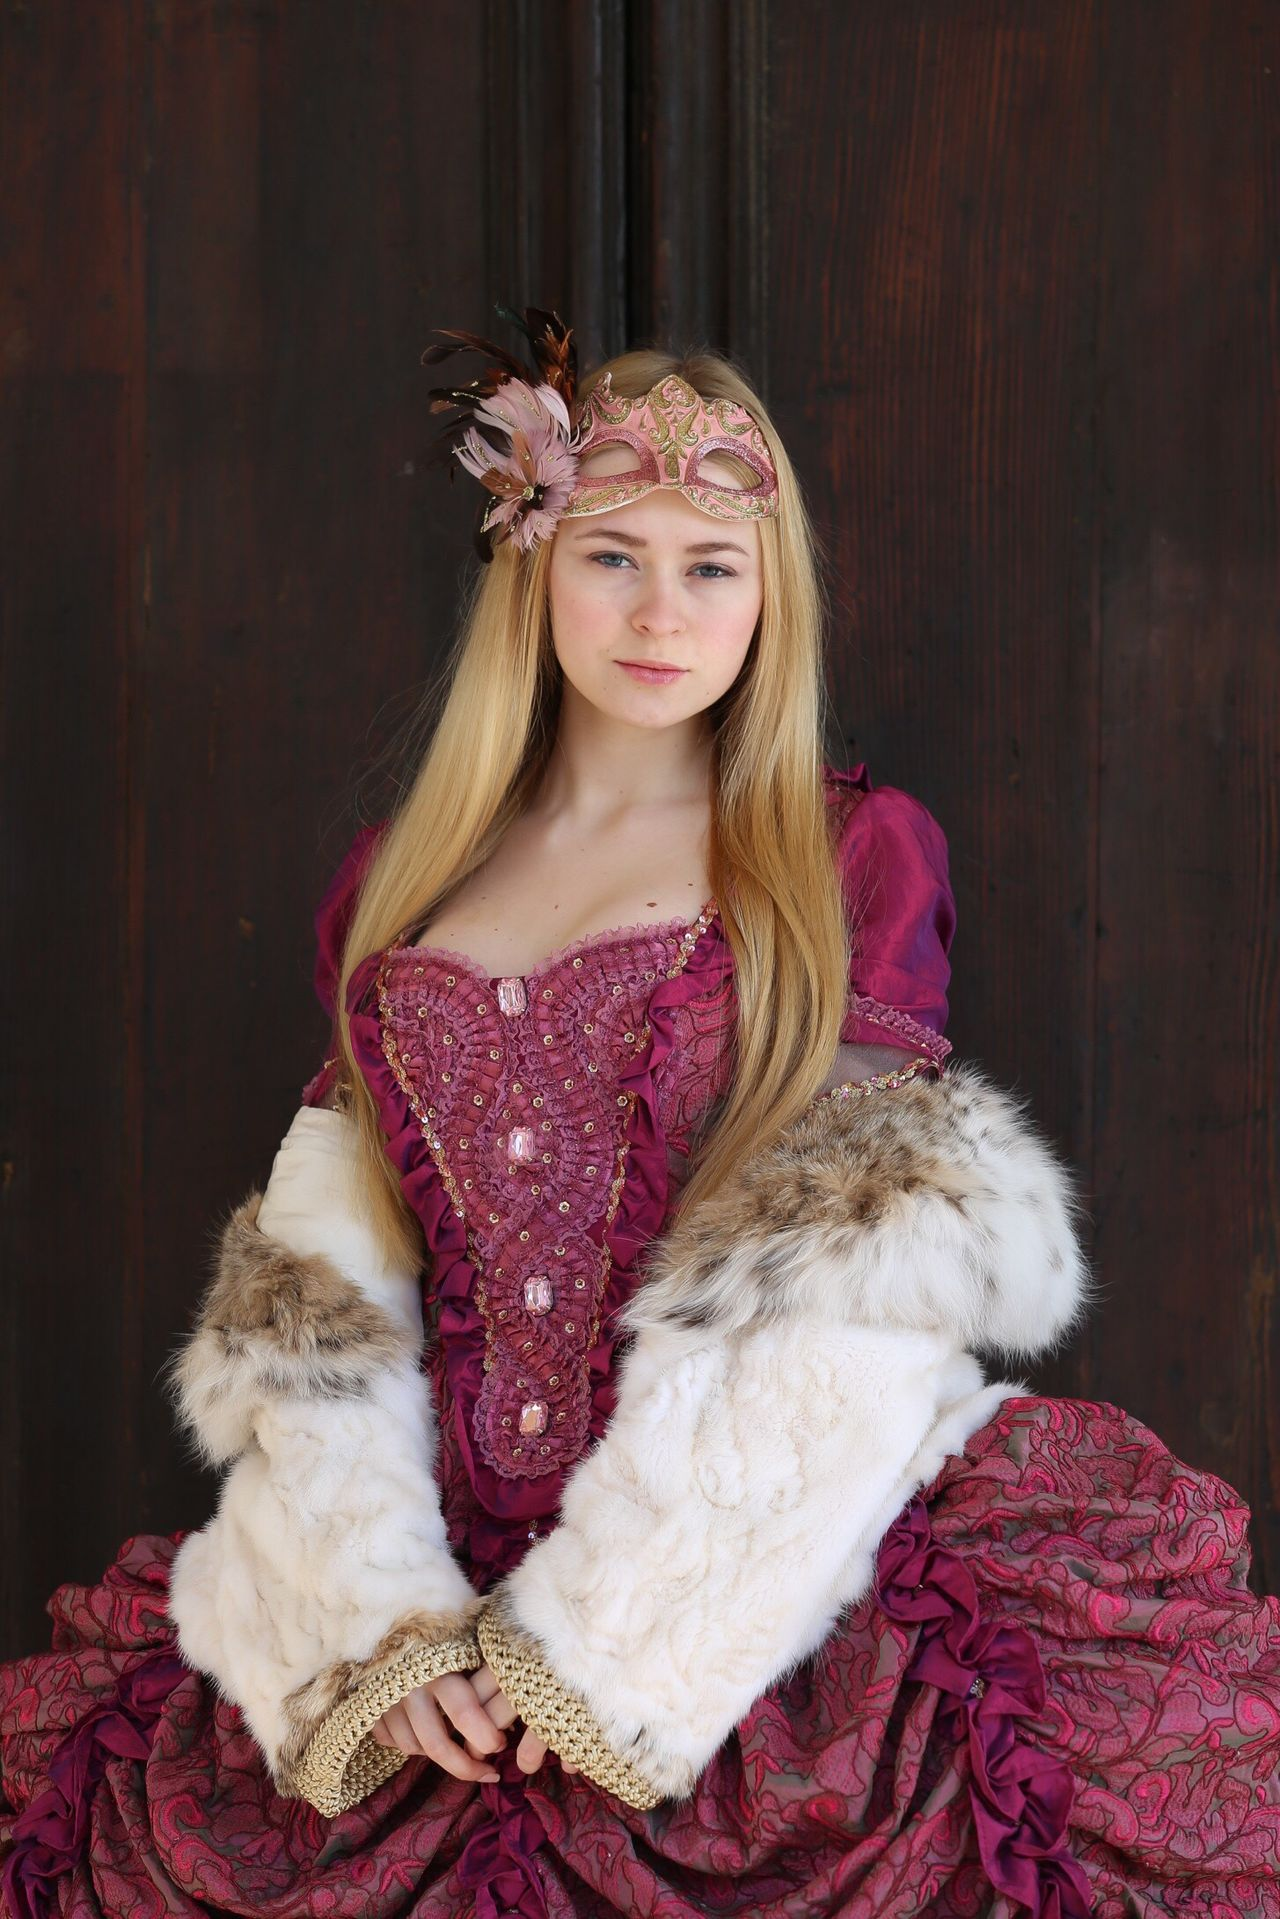 Mary My Daughter Girl Portrait Young Adult Beautiful Venice Traveling Holiday Carnival Dress Mask Looking At Camera Long Hair Blond Hair Colors